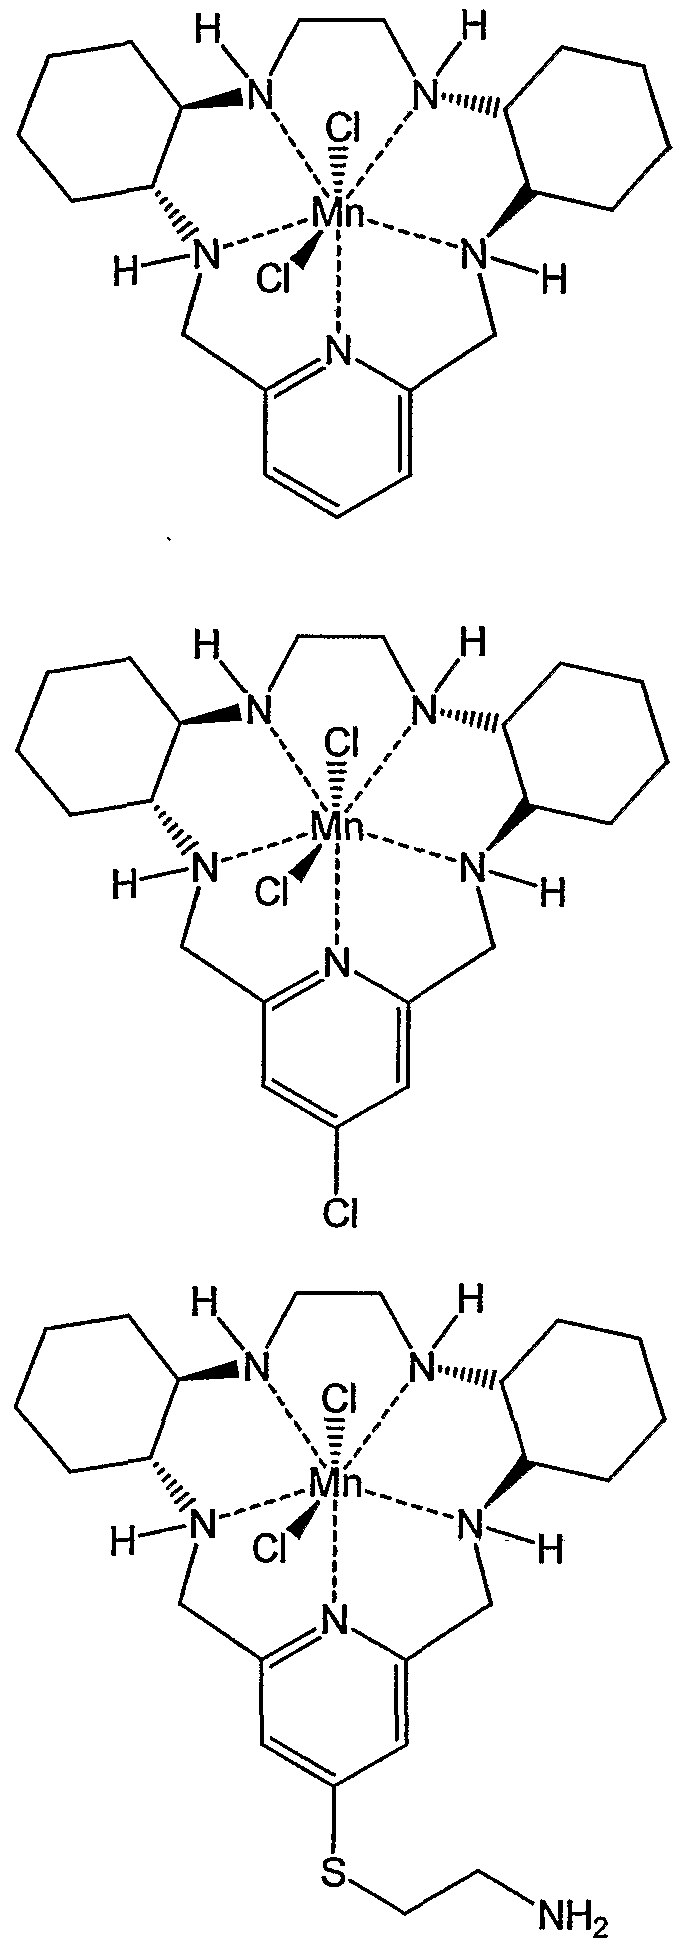 Wo2005044149a1 Modified Hyaluronic Acid Polymers Google Patents Diagramoftheeye23 Diagram Picture Figure Imgf000146 0001